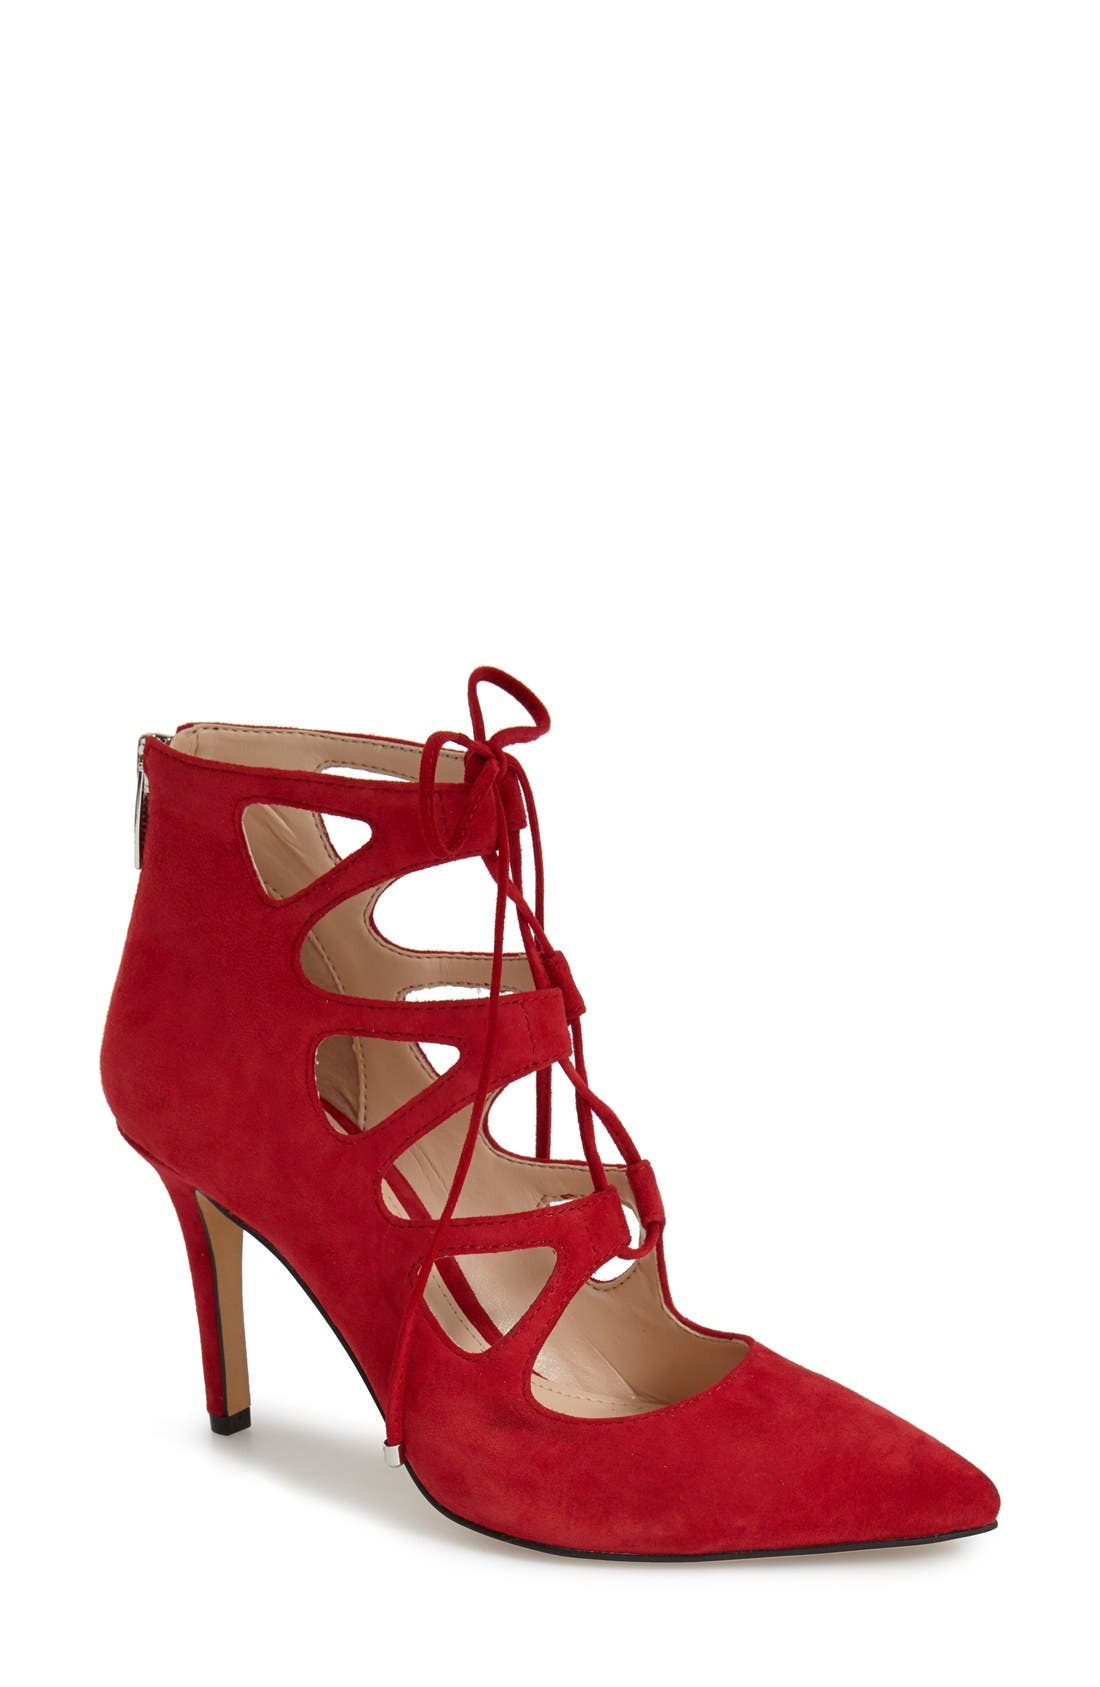 'Bodell' Lace Up Pump,                         Main,                         color, Love Affair Suede